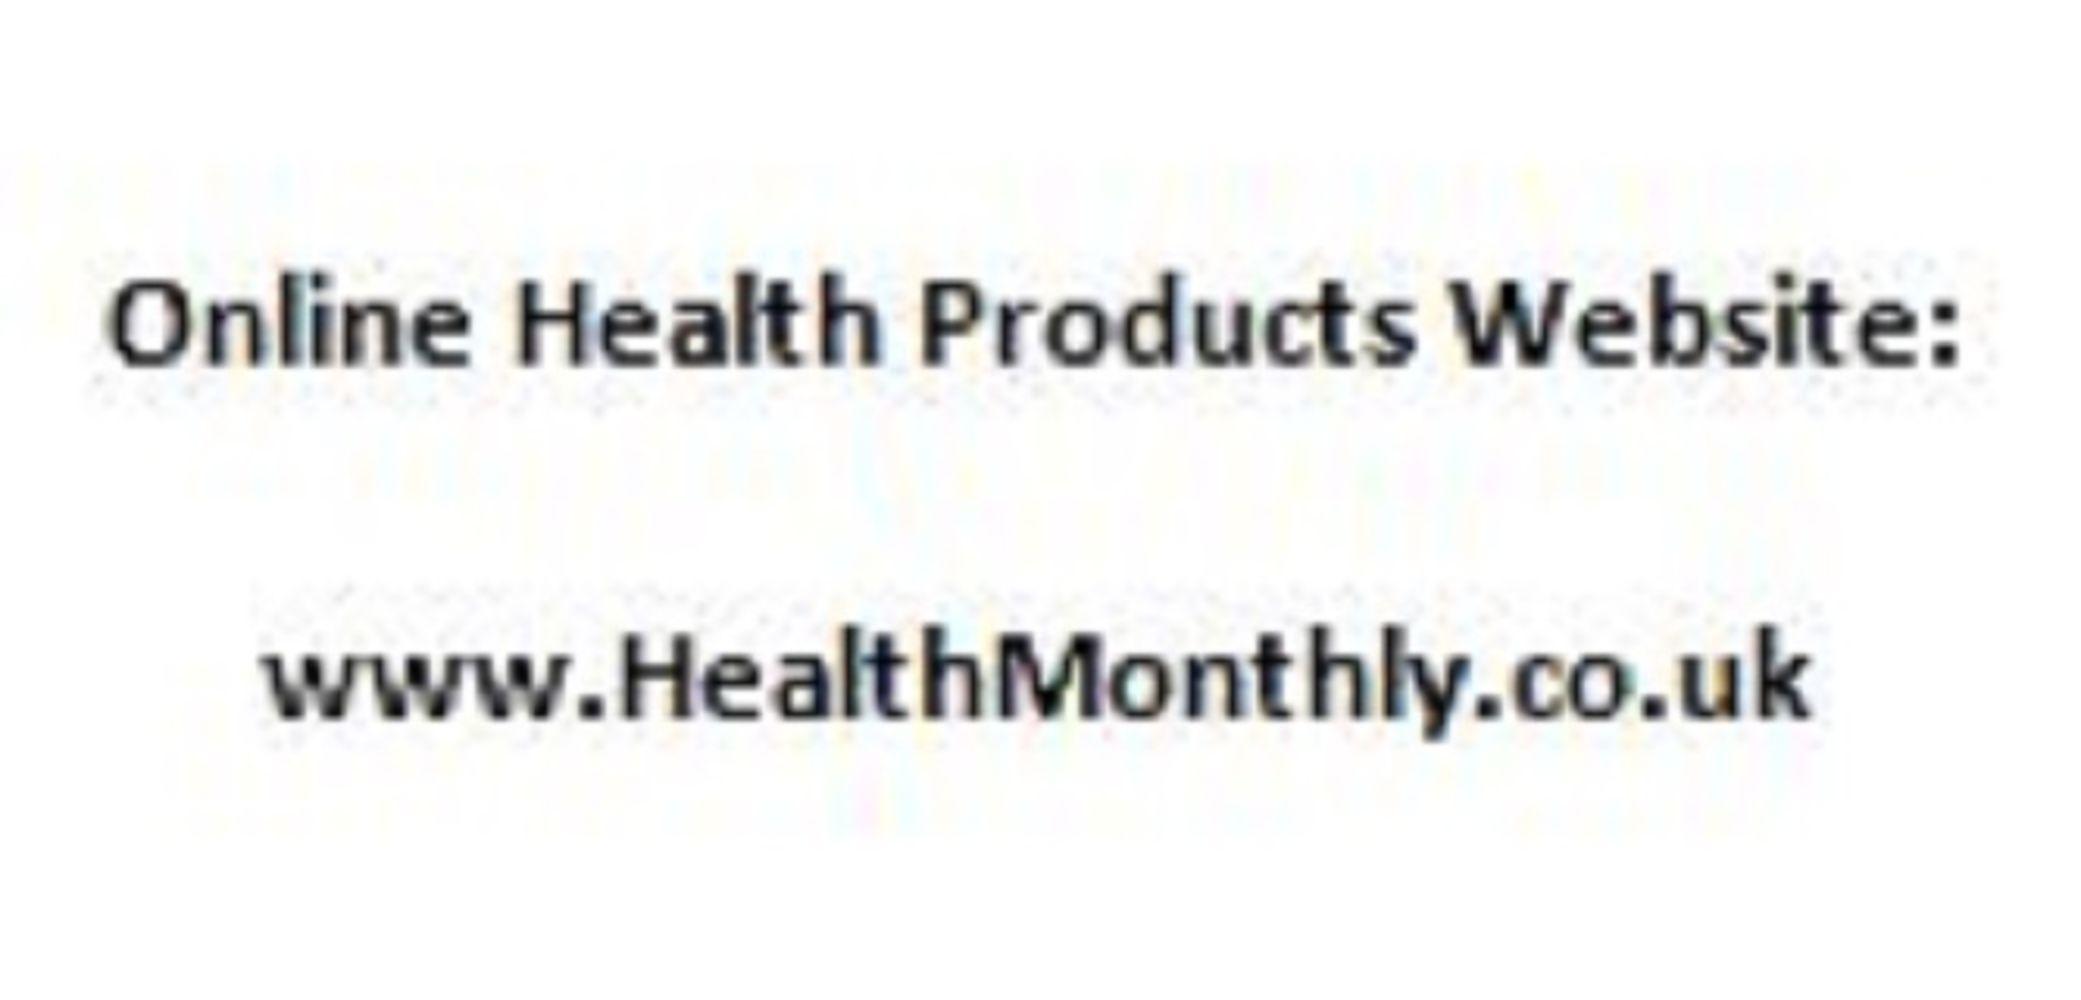 Online health products website and associated domain names